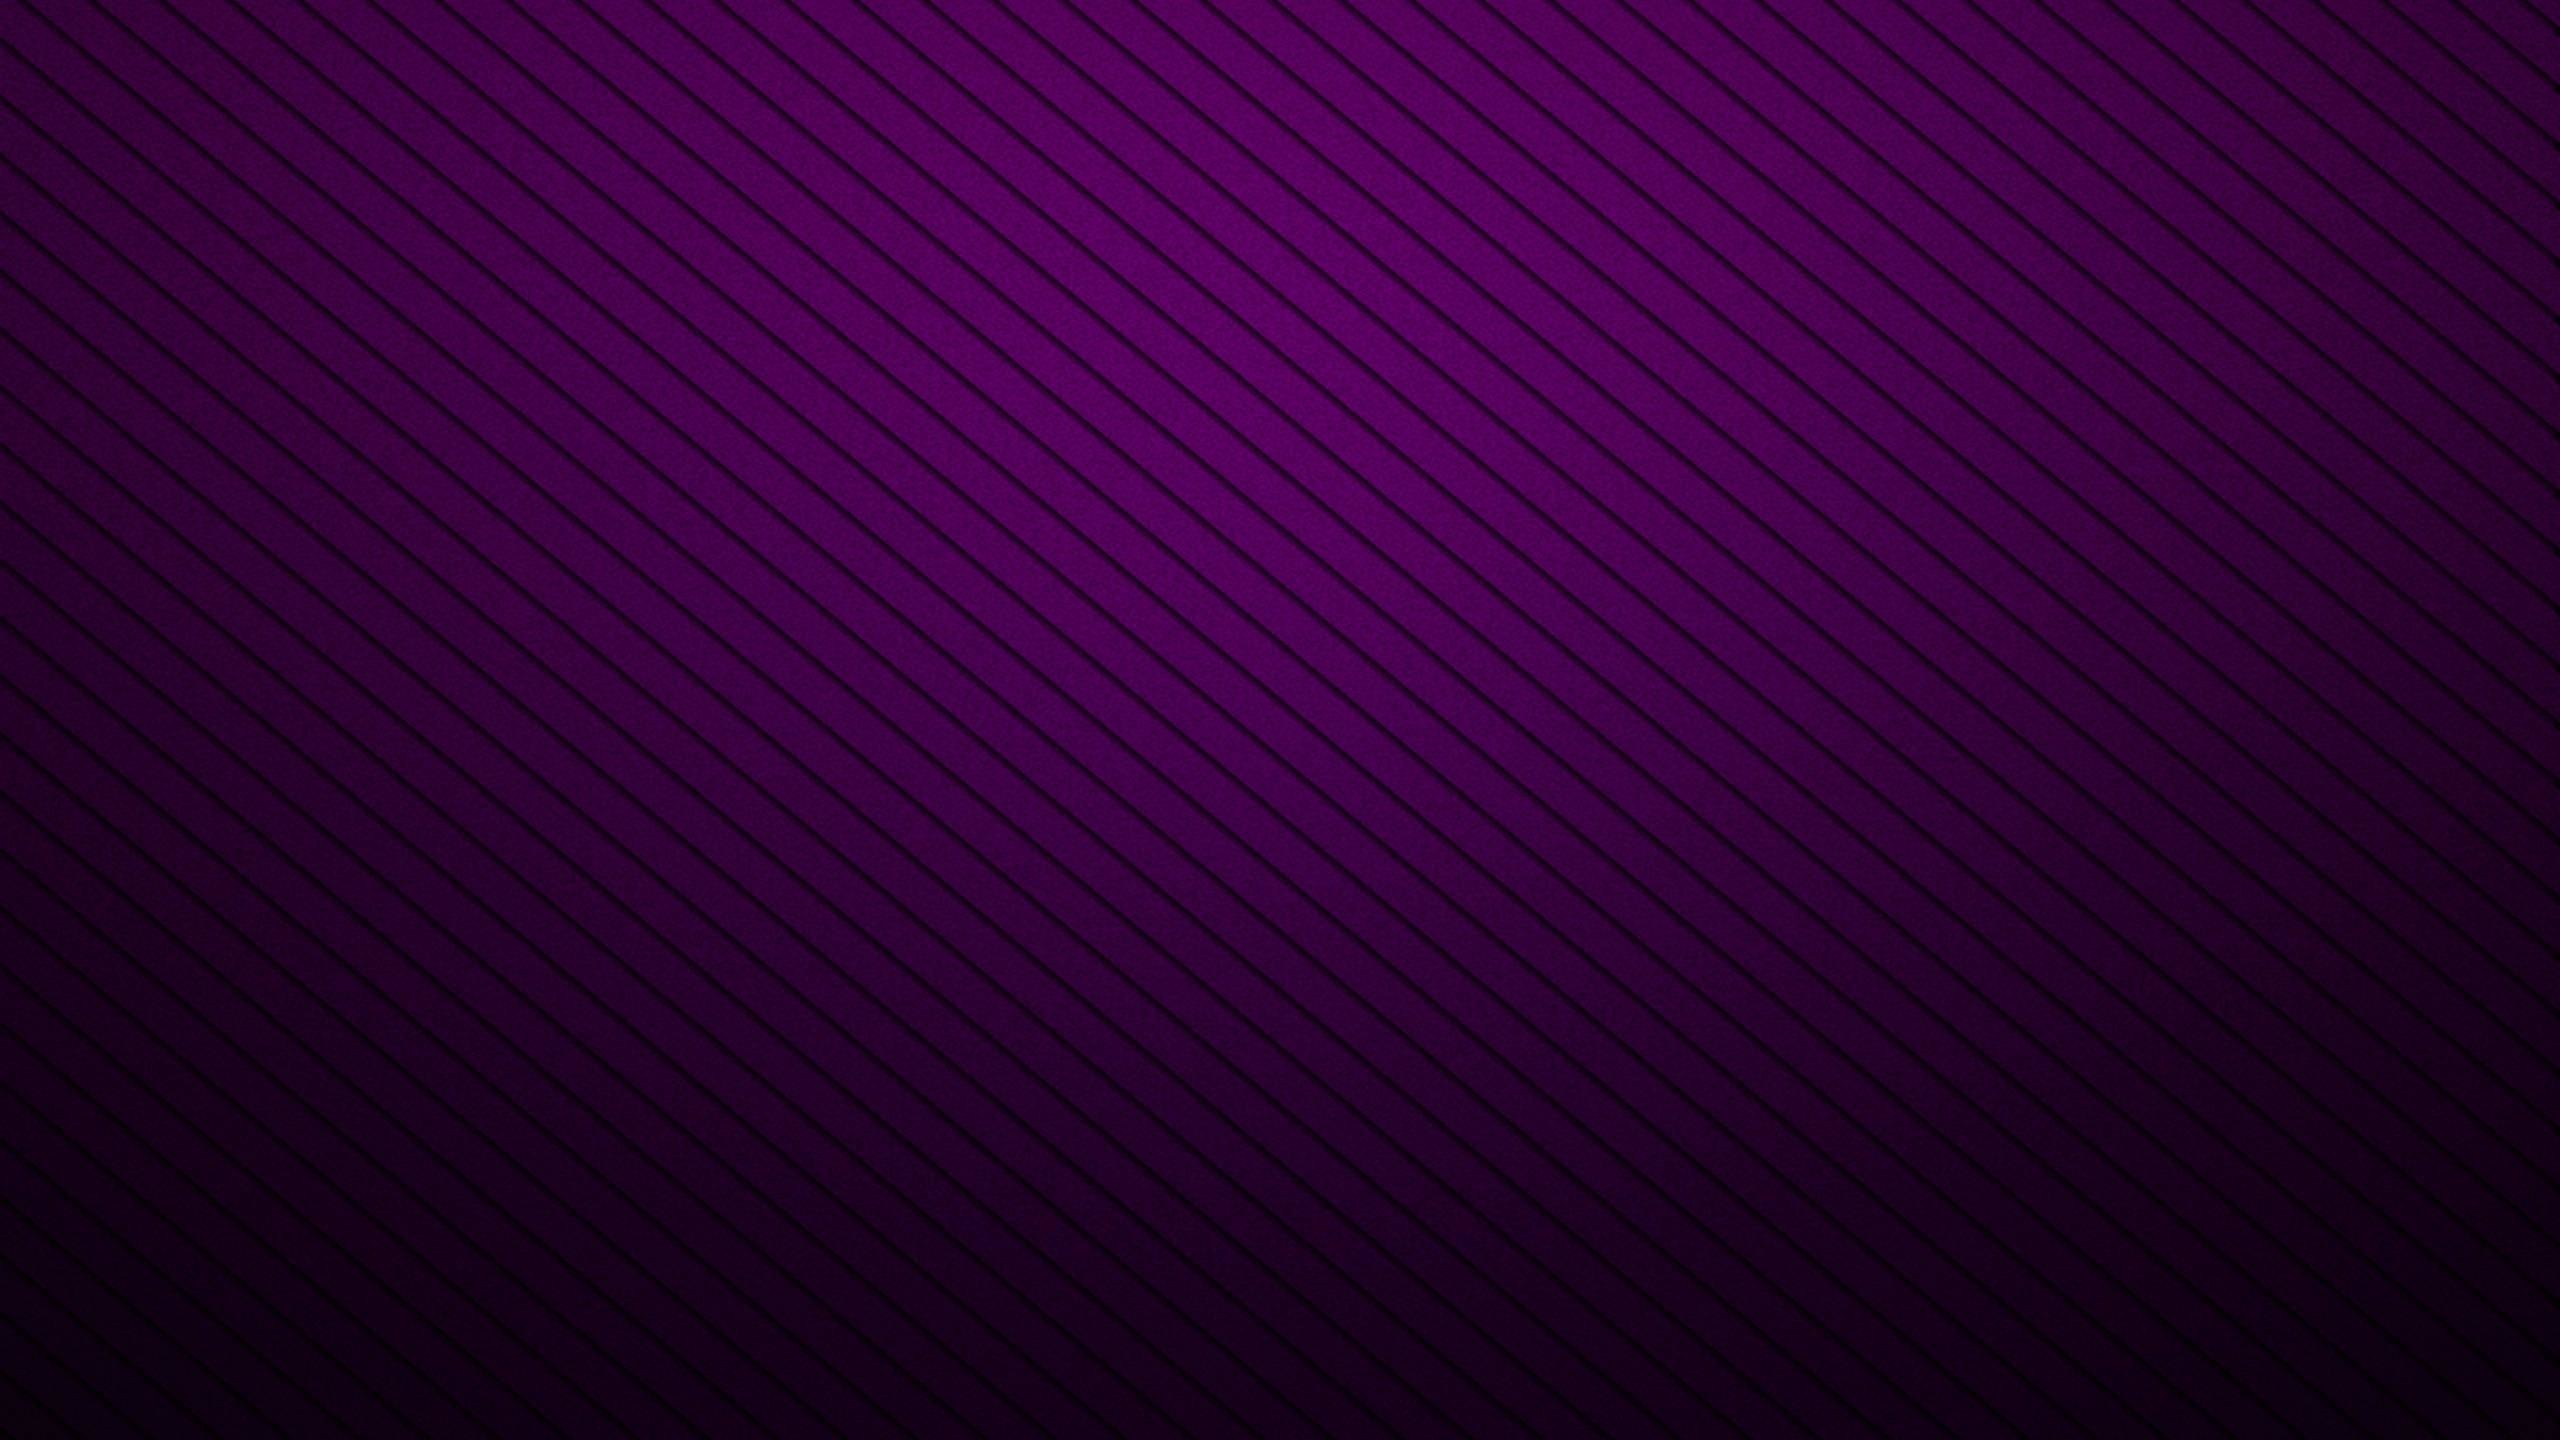 2560x1440 Black Silver And Purple Wallpaper